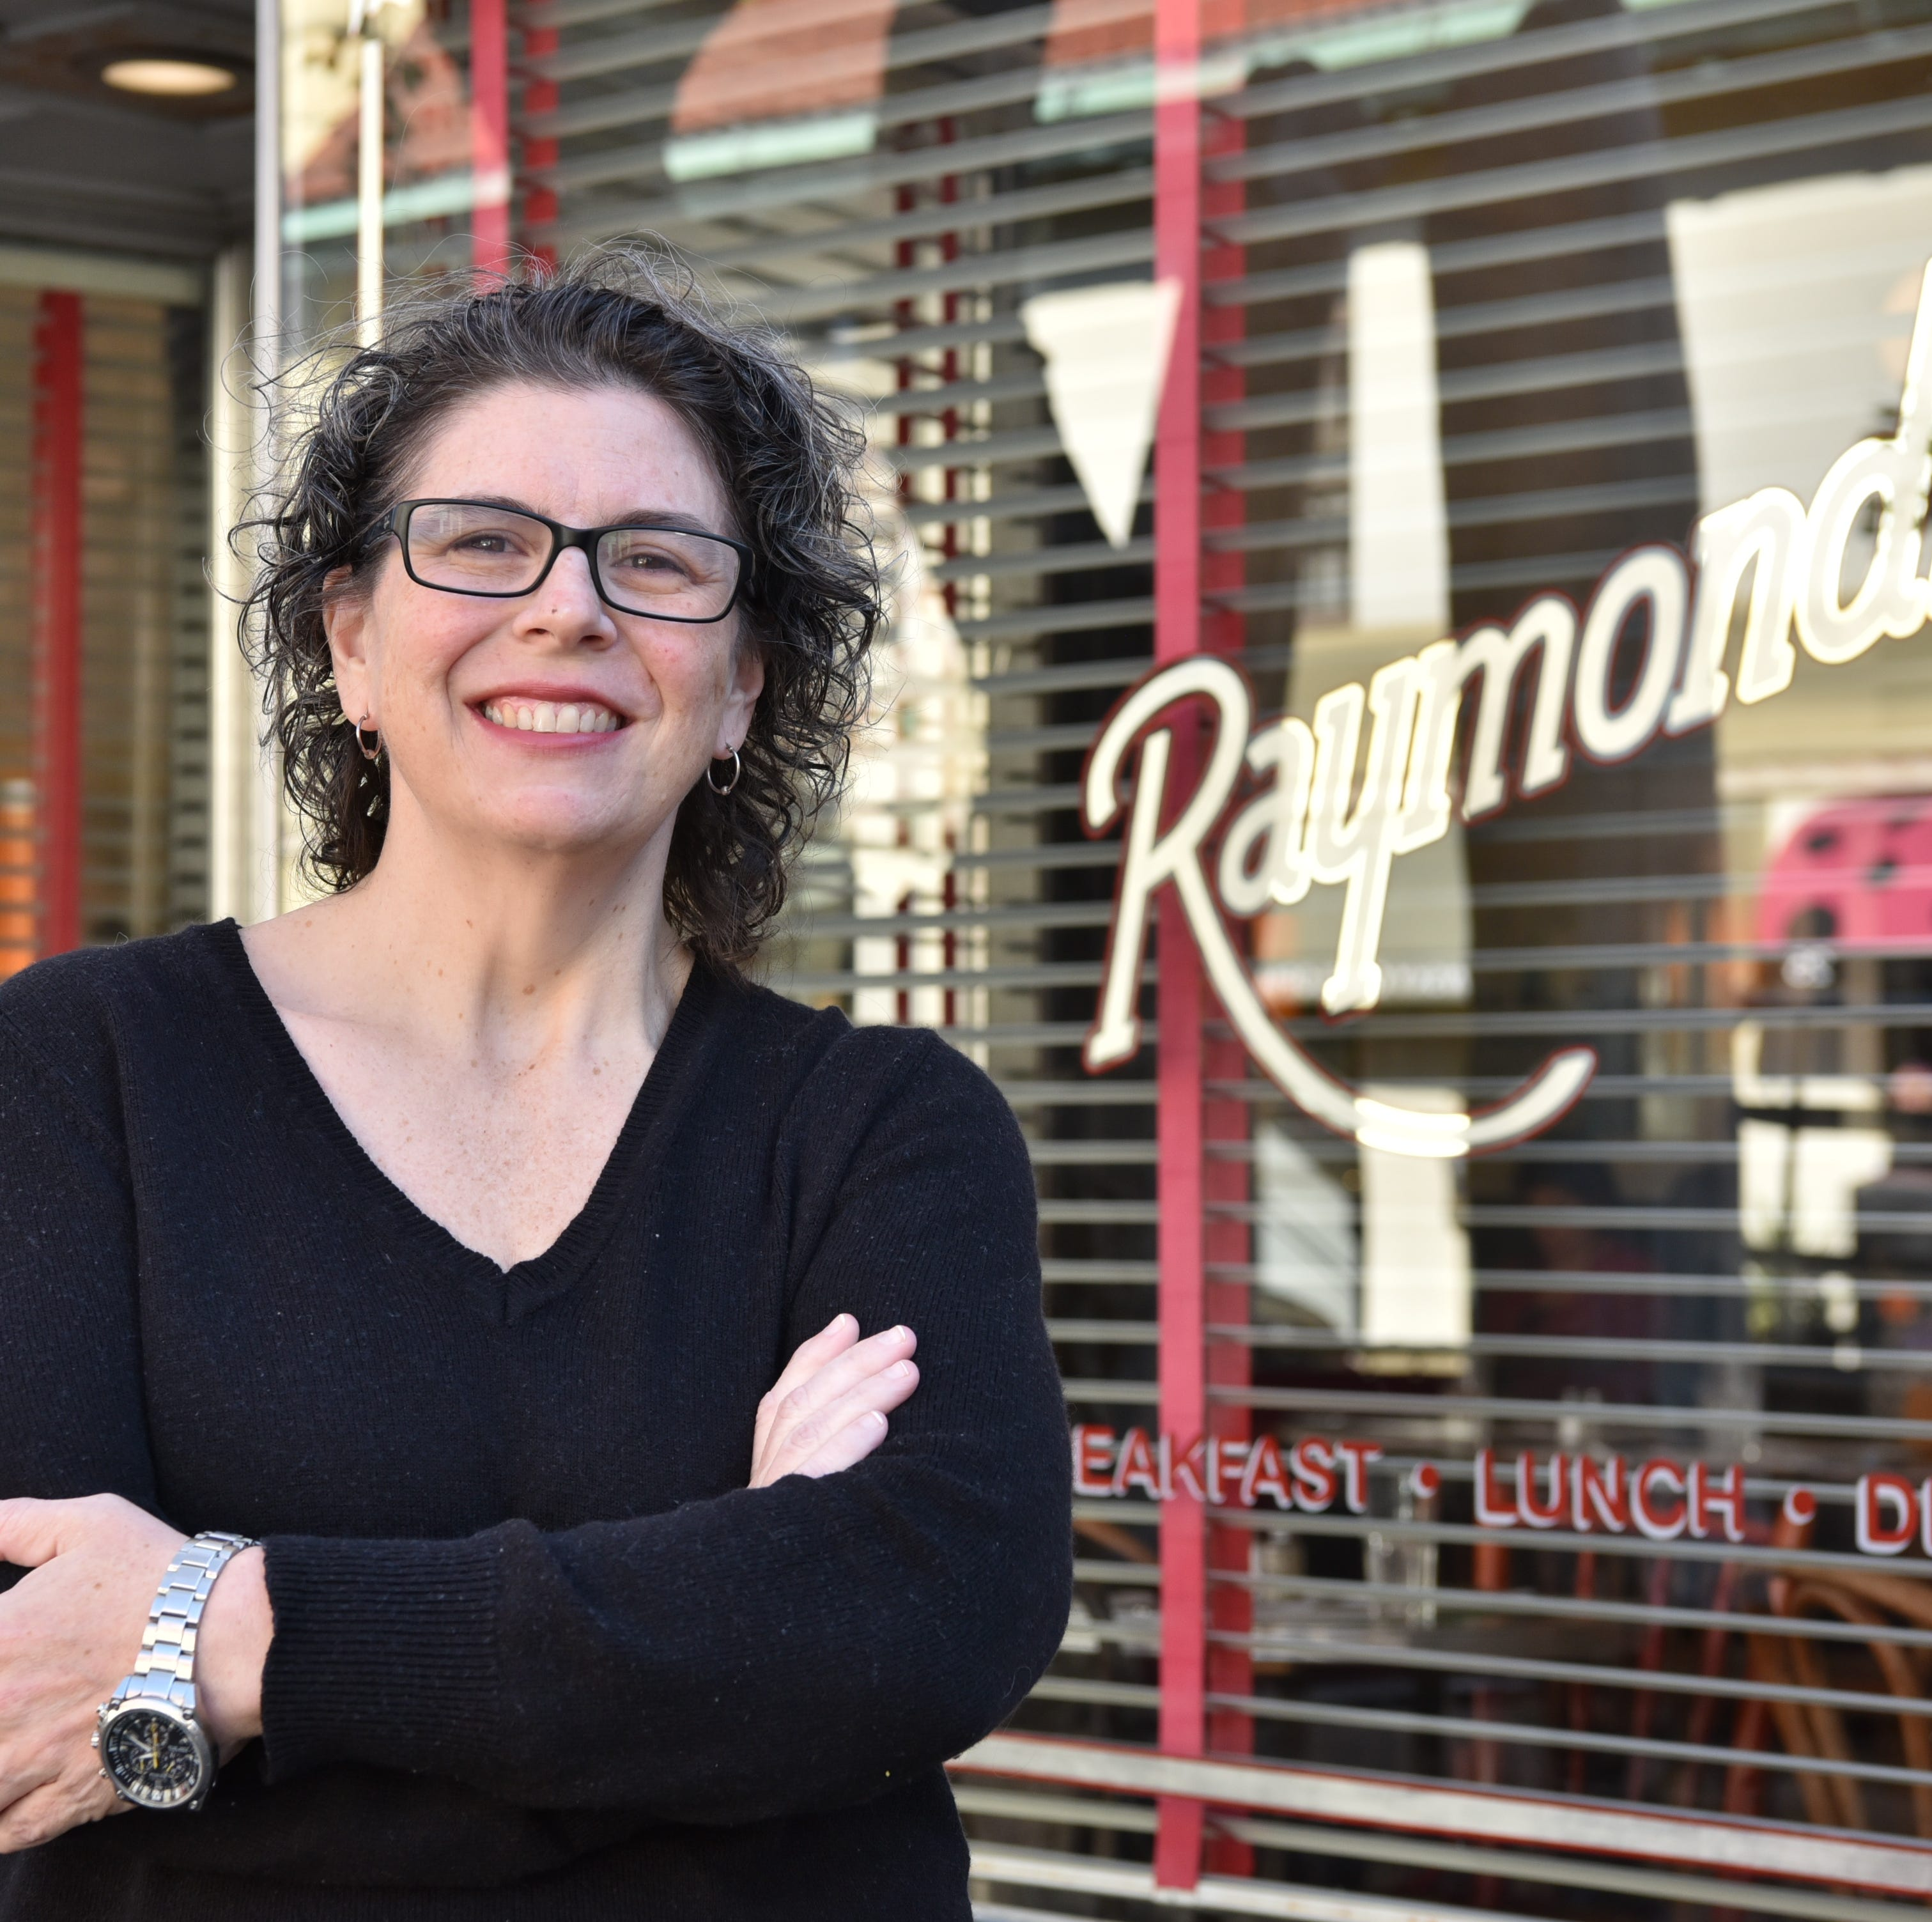 Former aspiring comic, operations manager keeps restaurants running smoothly